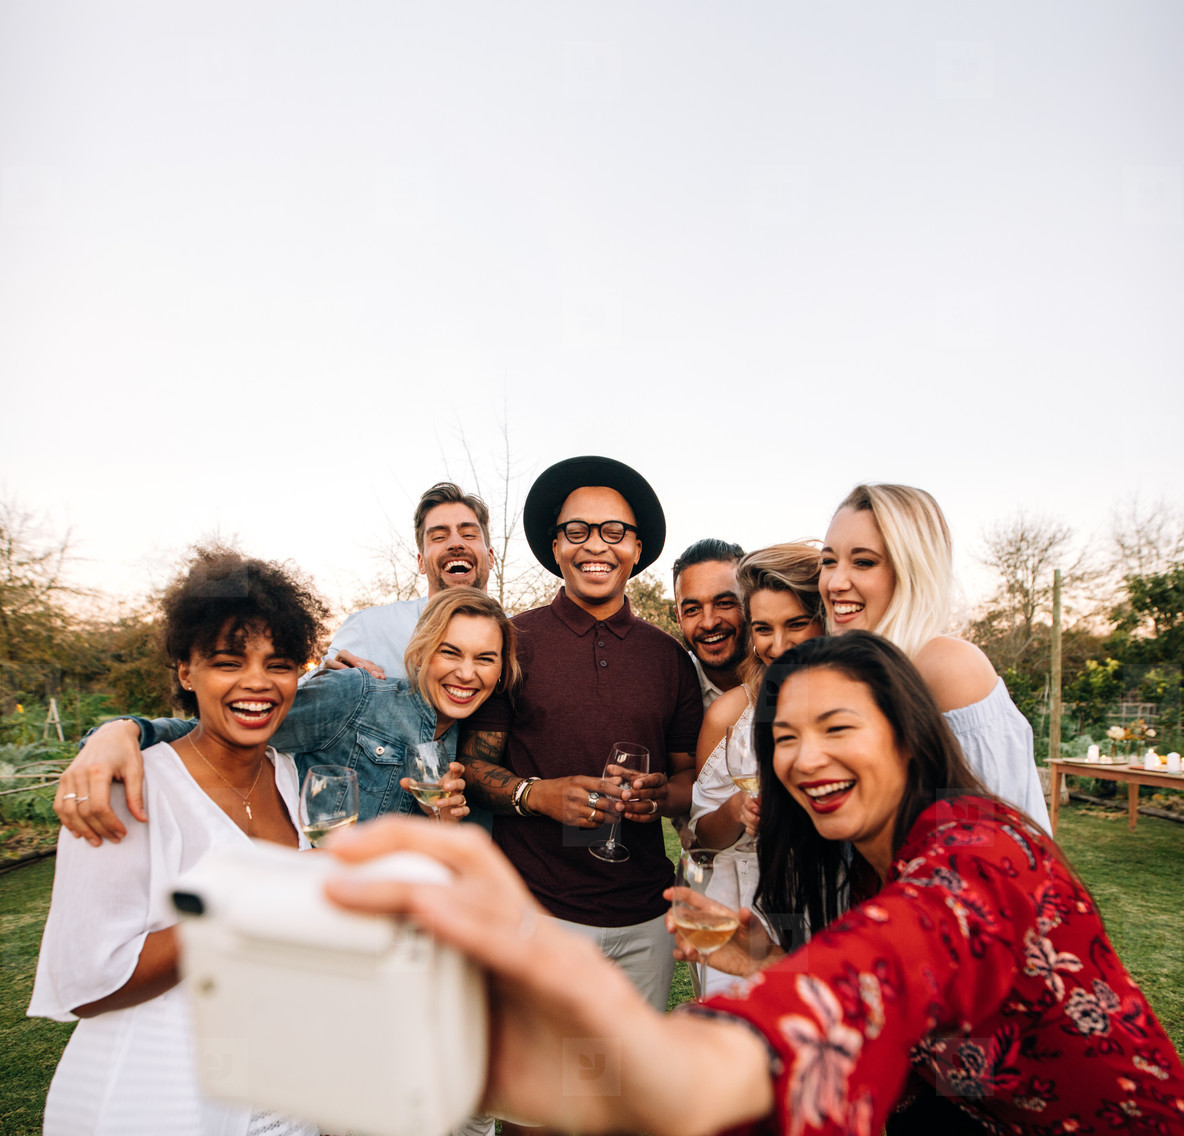 Group of friends taking picture with instant camera